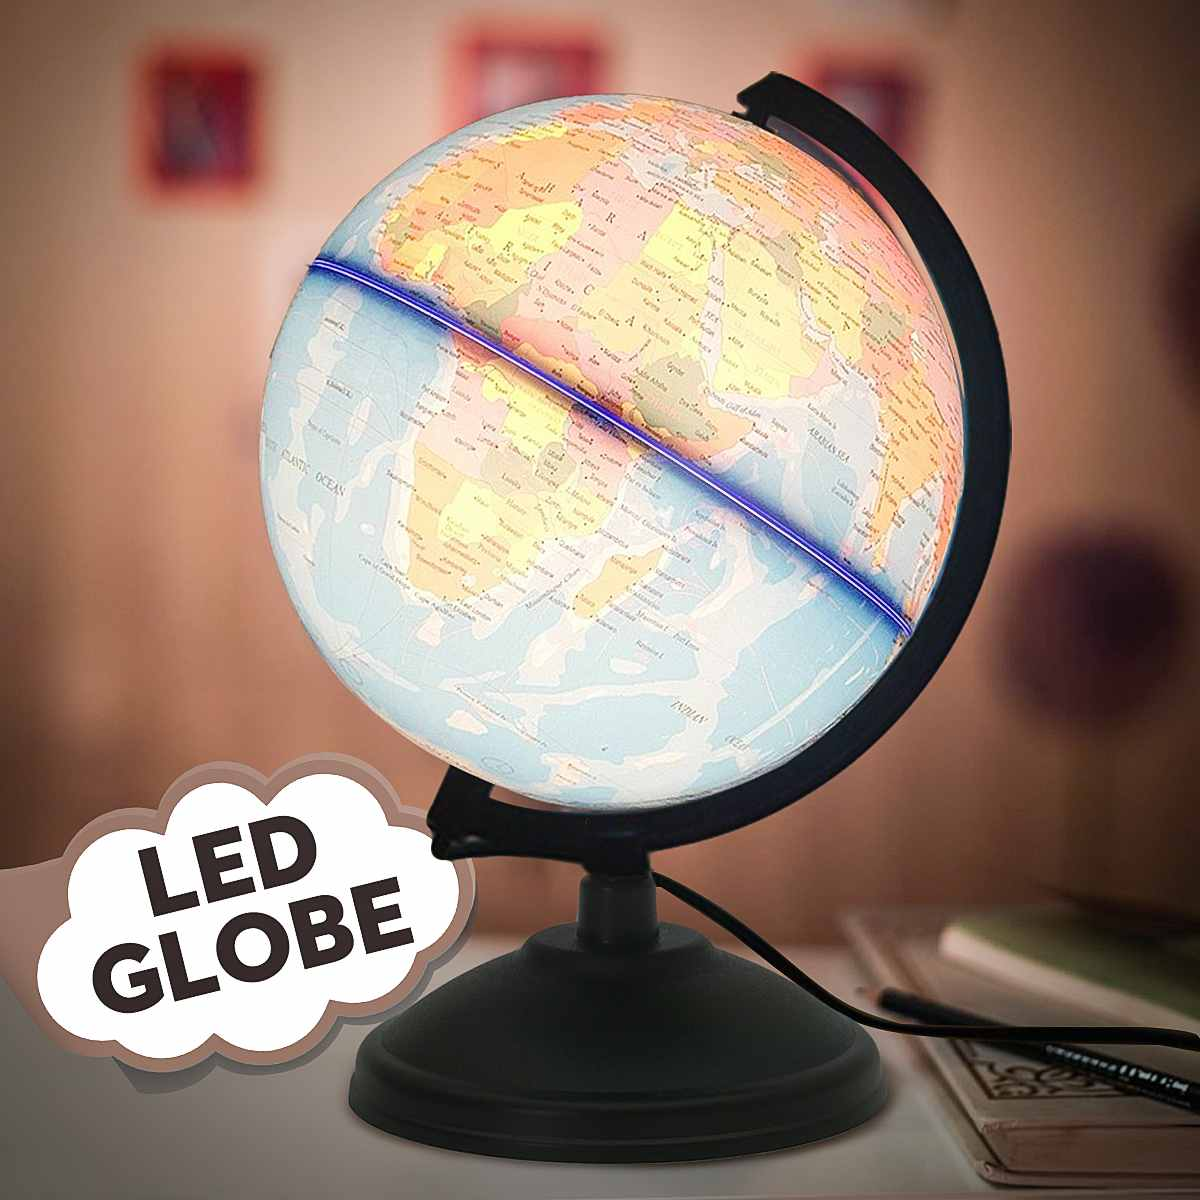 LED World Map Globe Home Electronic Lamp Novelty Ball Light Birthday Decoration Gift For Kids Children